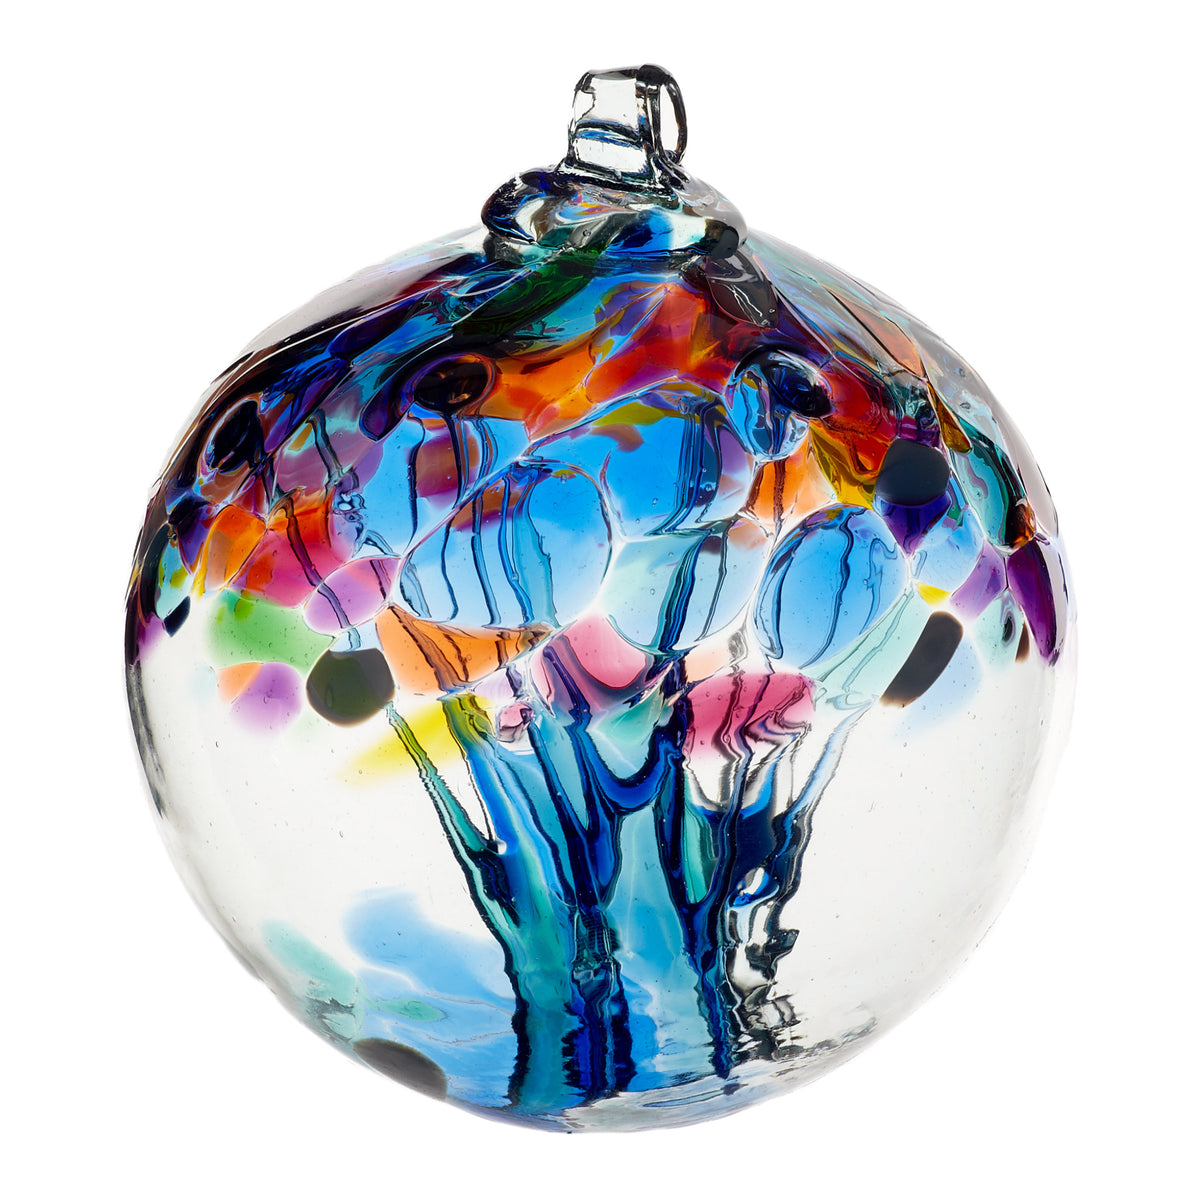 Clear glass ornament with accent colors of blue, pink, orange, and yellow. Strands of glass seem to stretch through the middle of the orb.